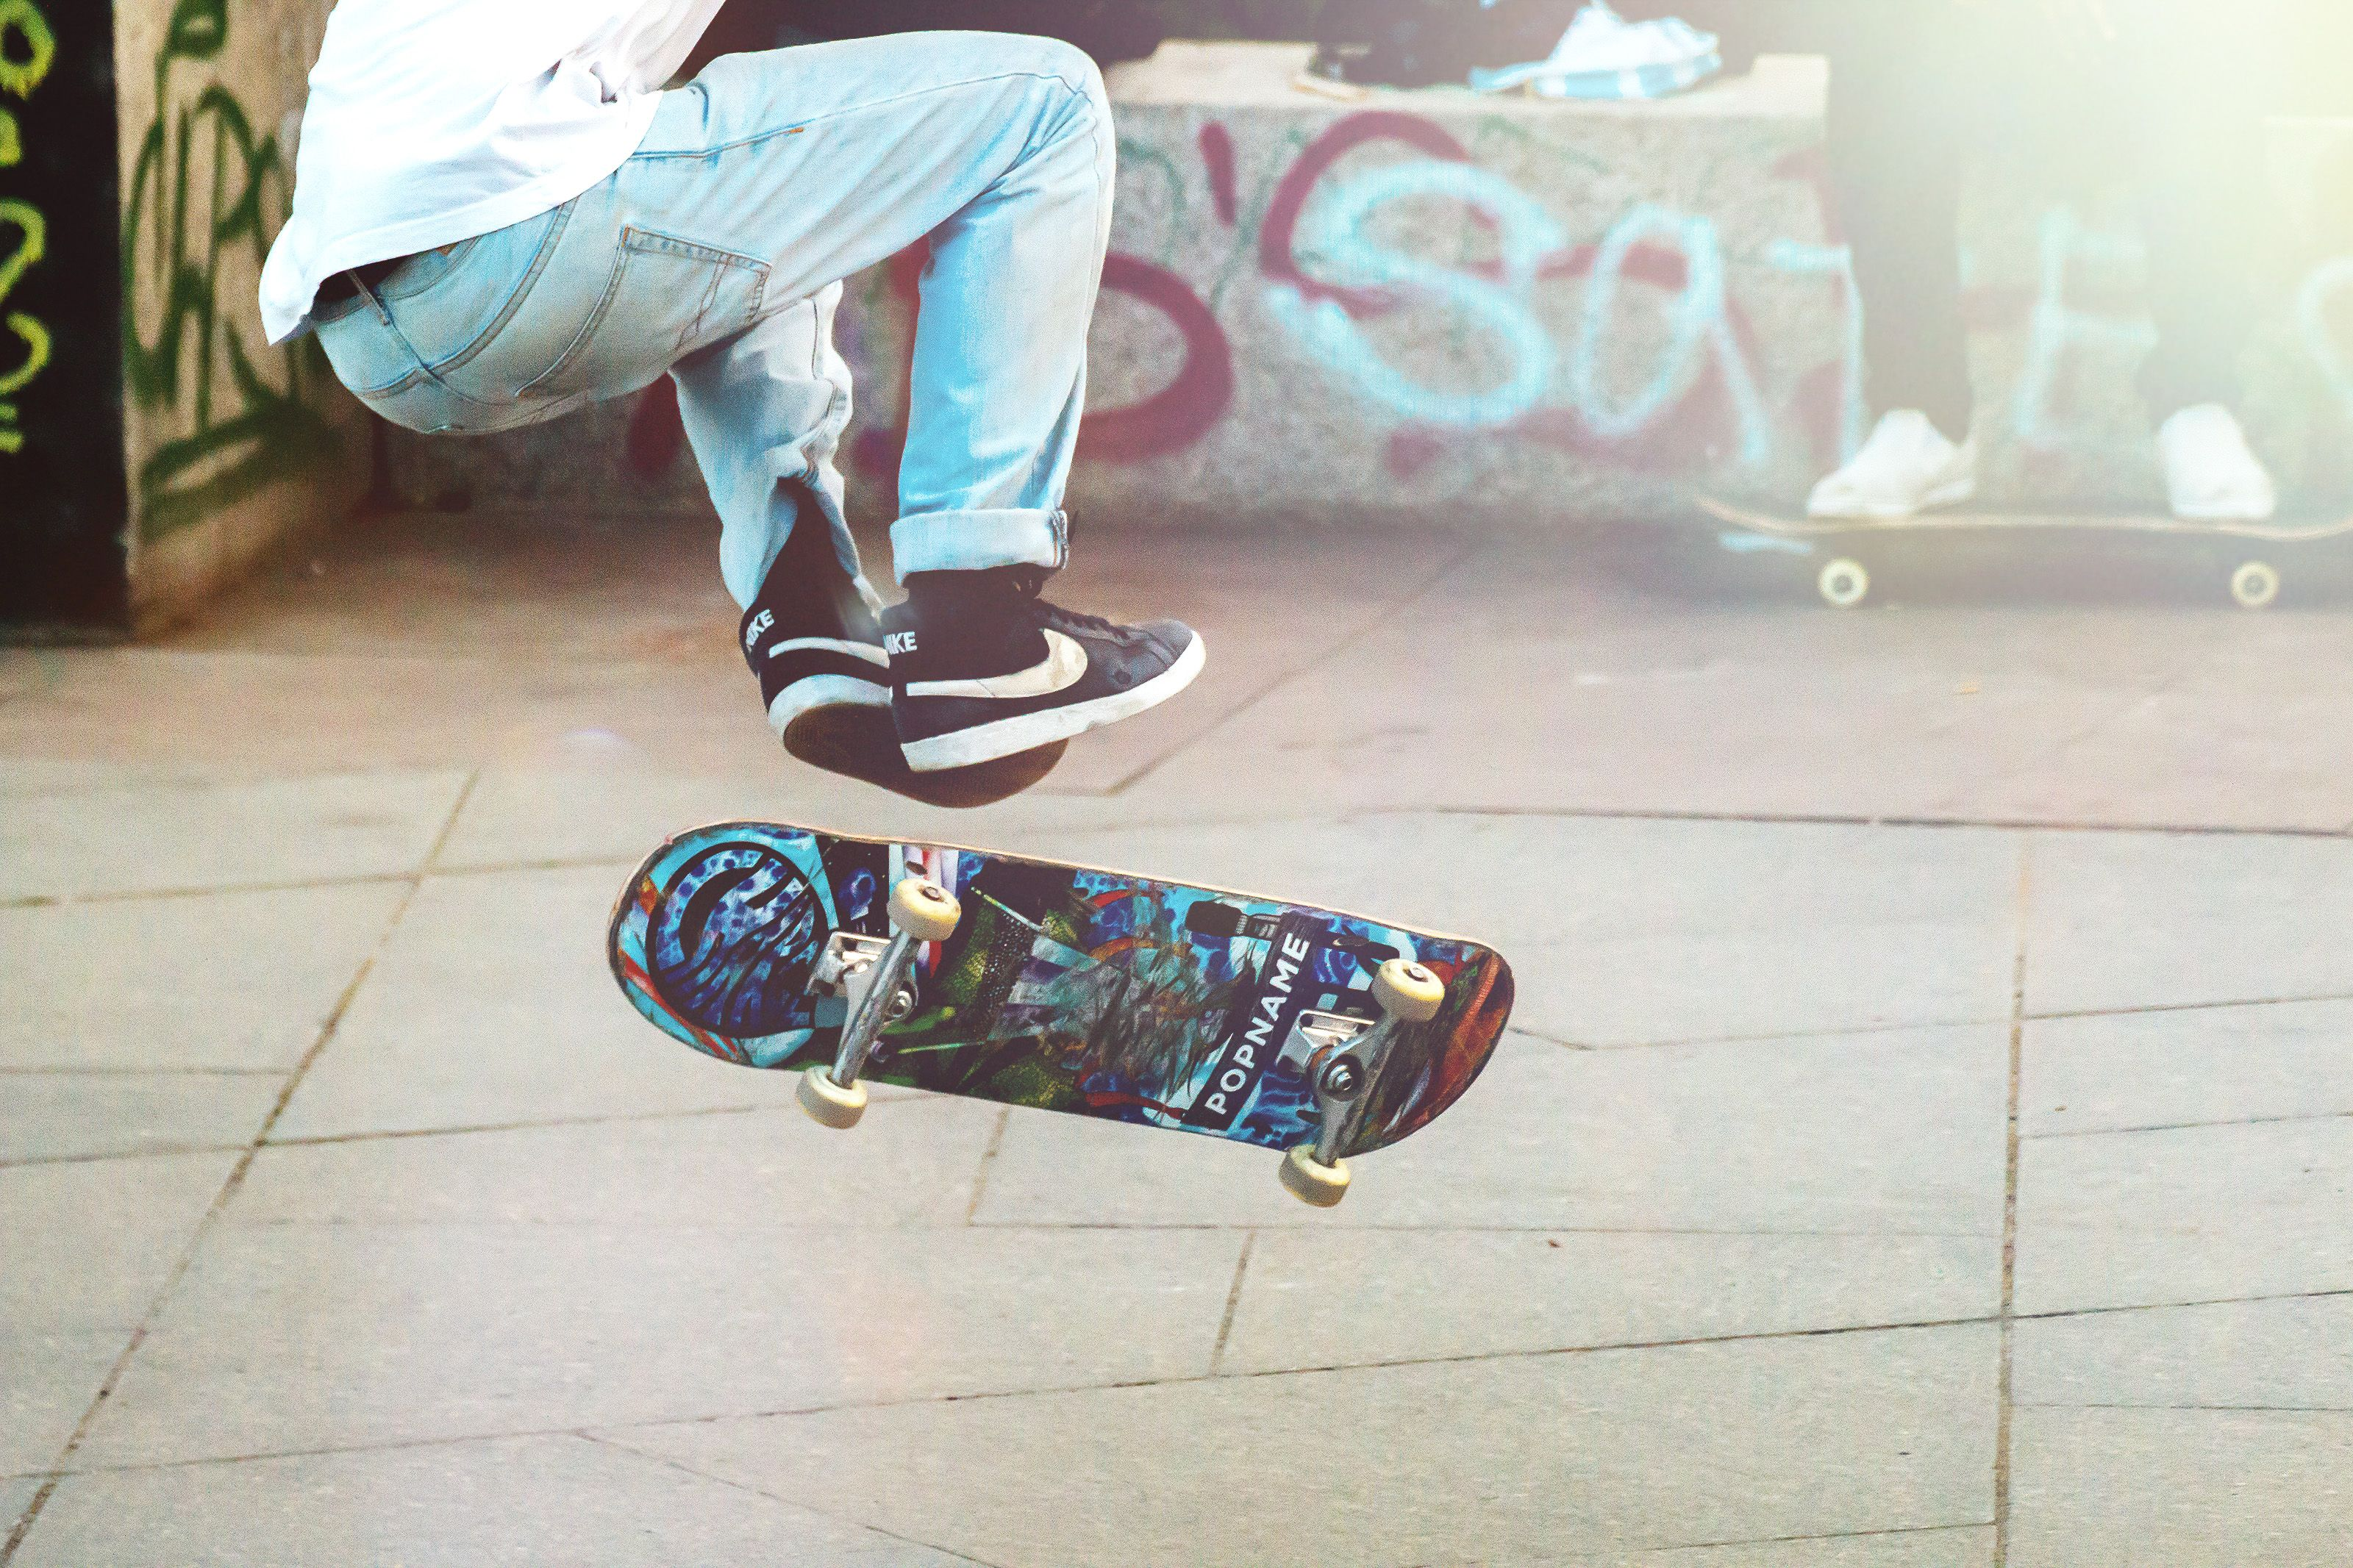 There S No Denying That Skating Is Hard On Your Feet Which Is Why We Ve Rounded Up The Top Rated Best Skate Shoes Avai Cool Skateboards Skateboard Skateboards